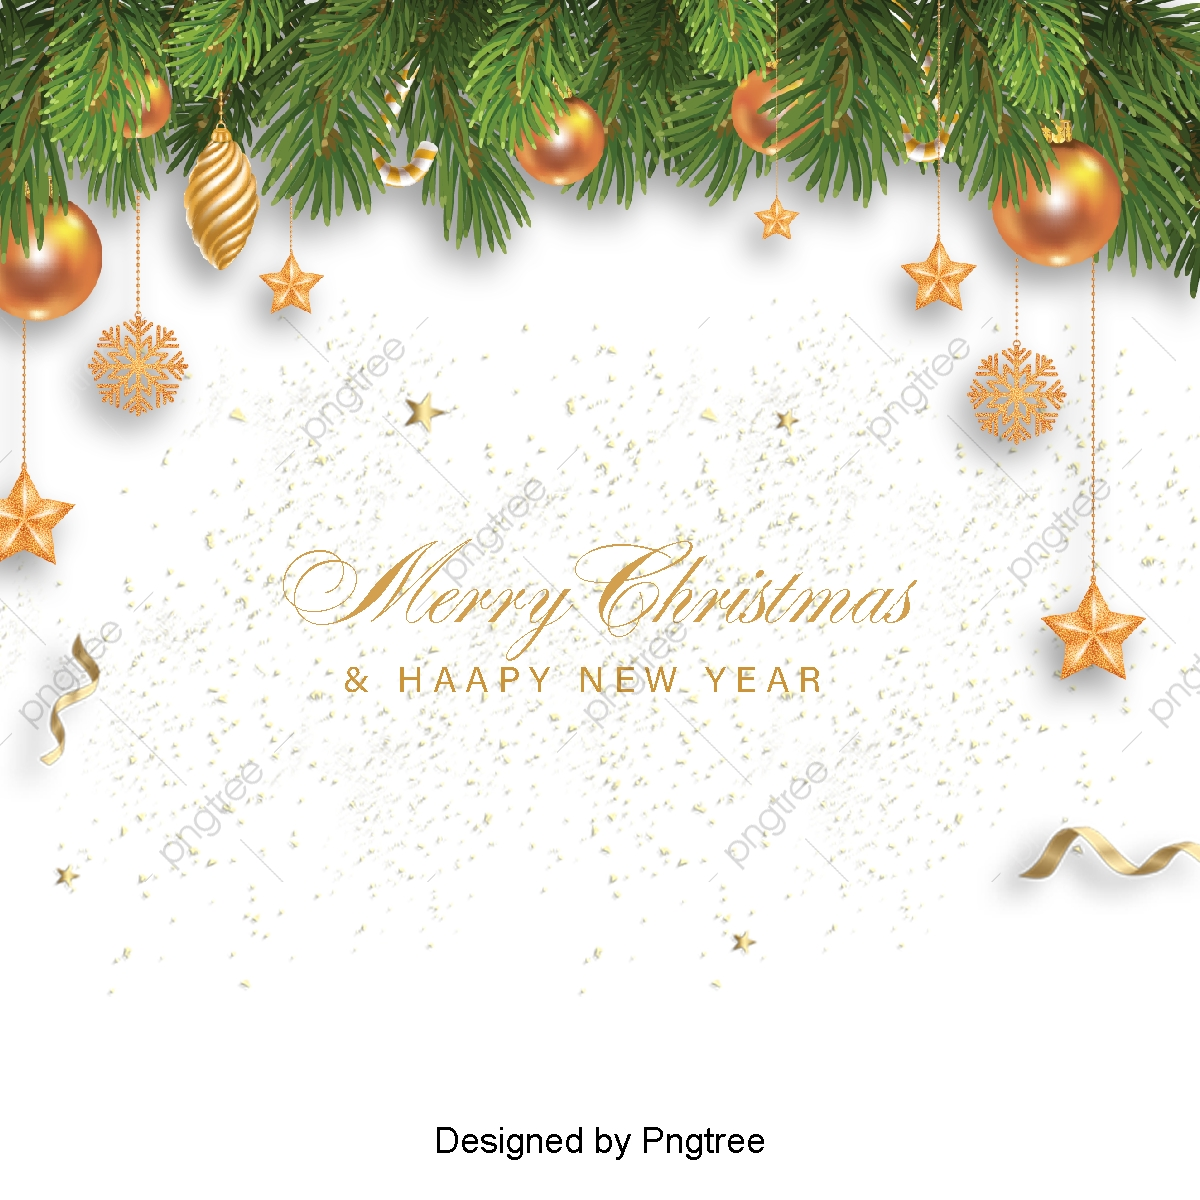 The Simple Color Background And White Christmas Card, Sns Background.